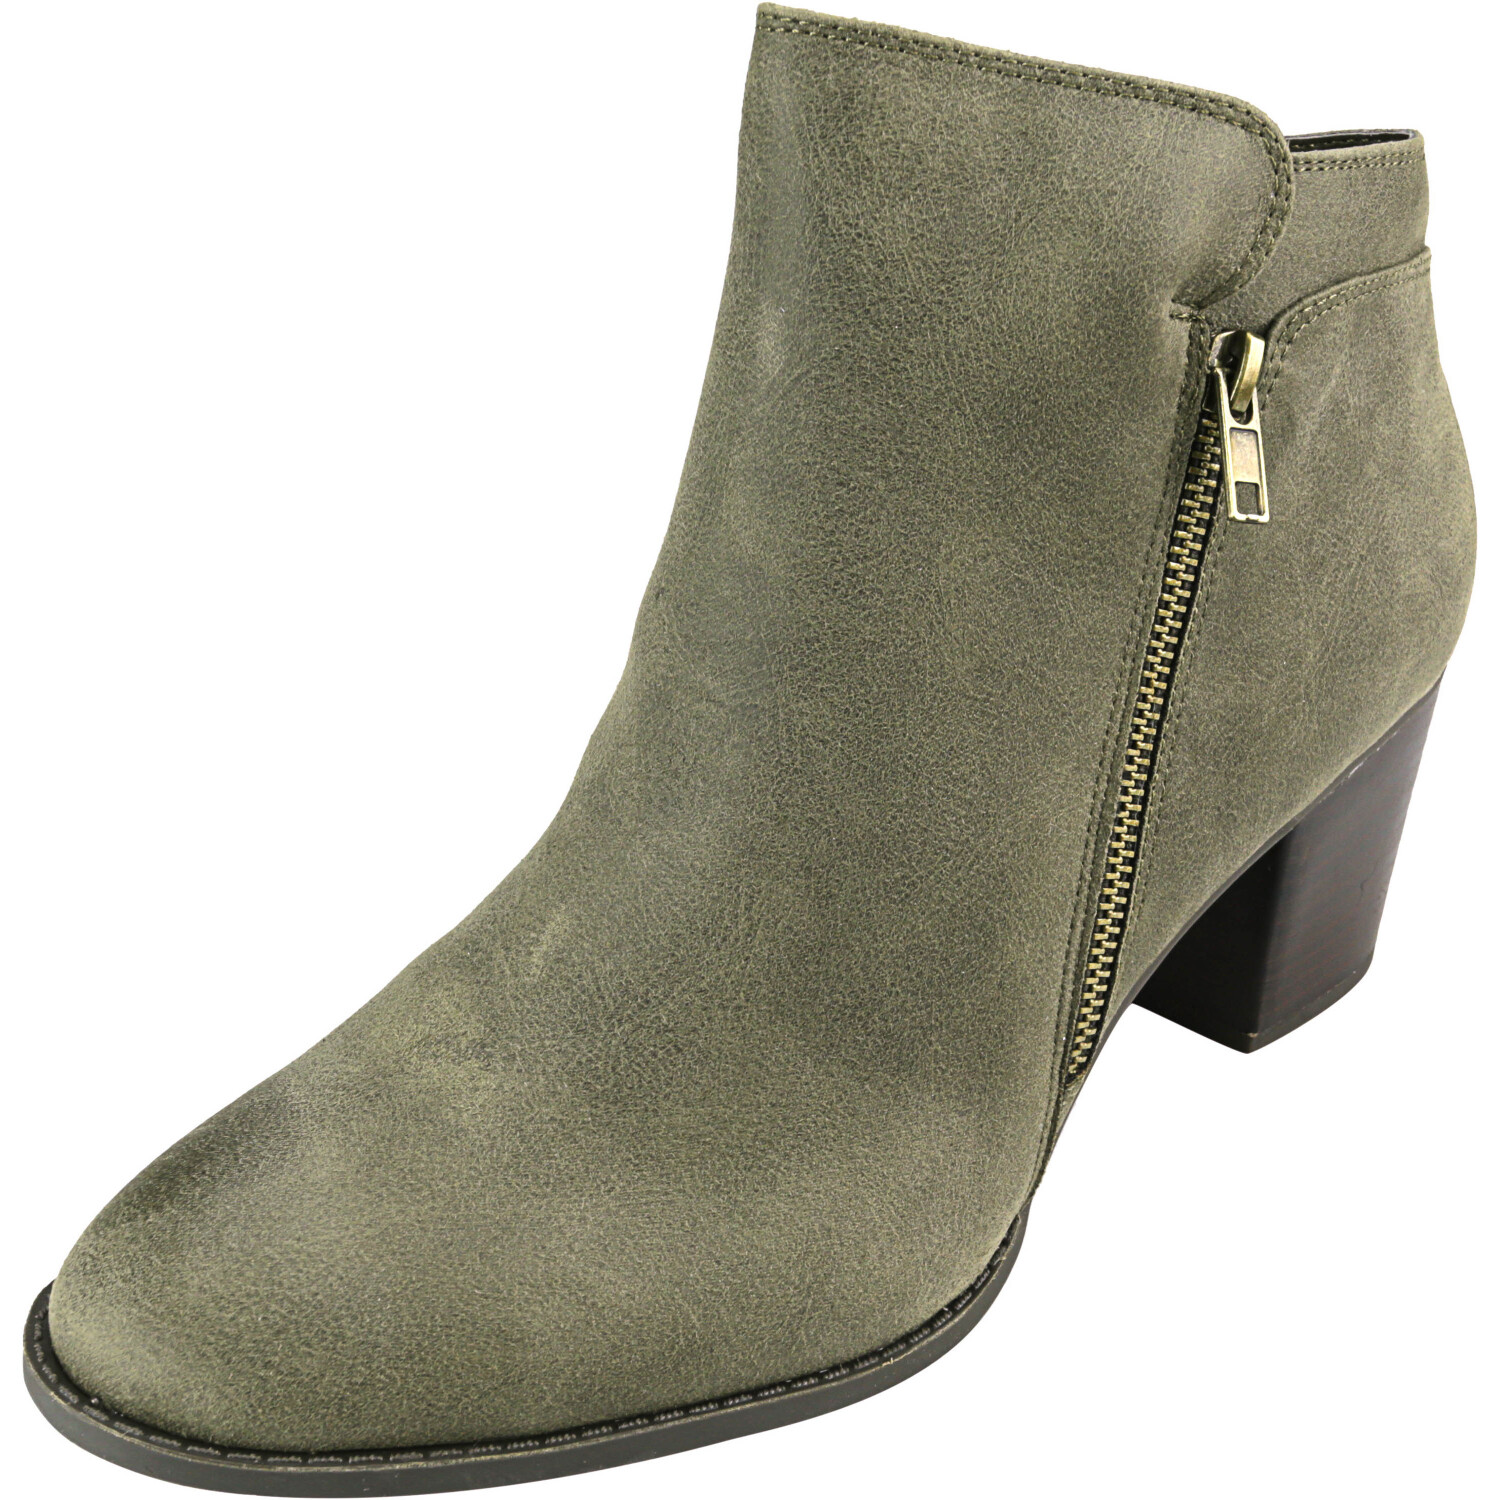 Fergalicious Women's Delta Olive High-Top Fabric Boot - 11M